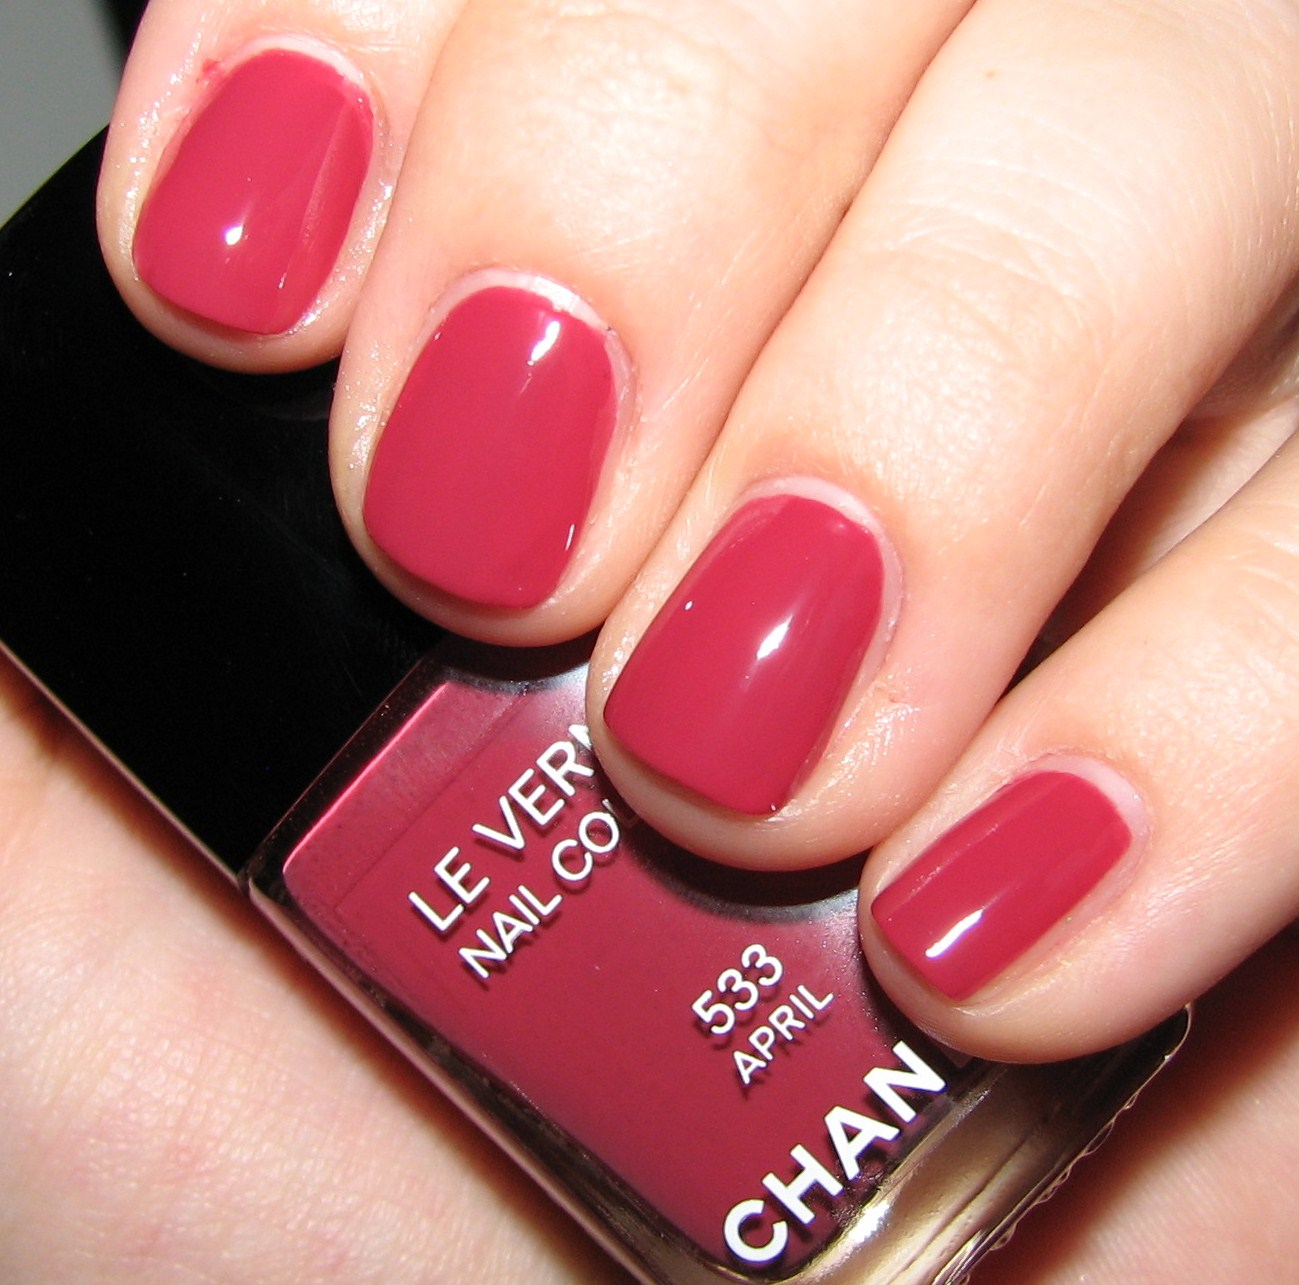 Vernis Nail: Chanel APRIL 533 Le Vernis Nail Colour Swatches And Review